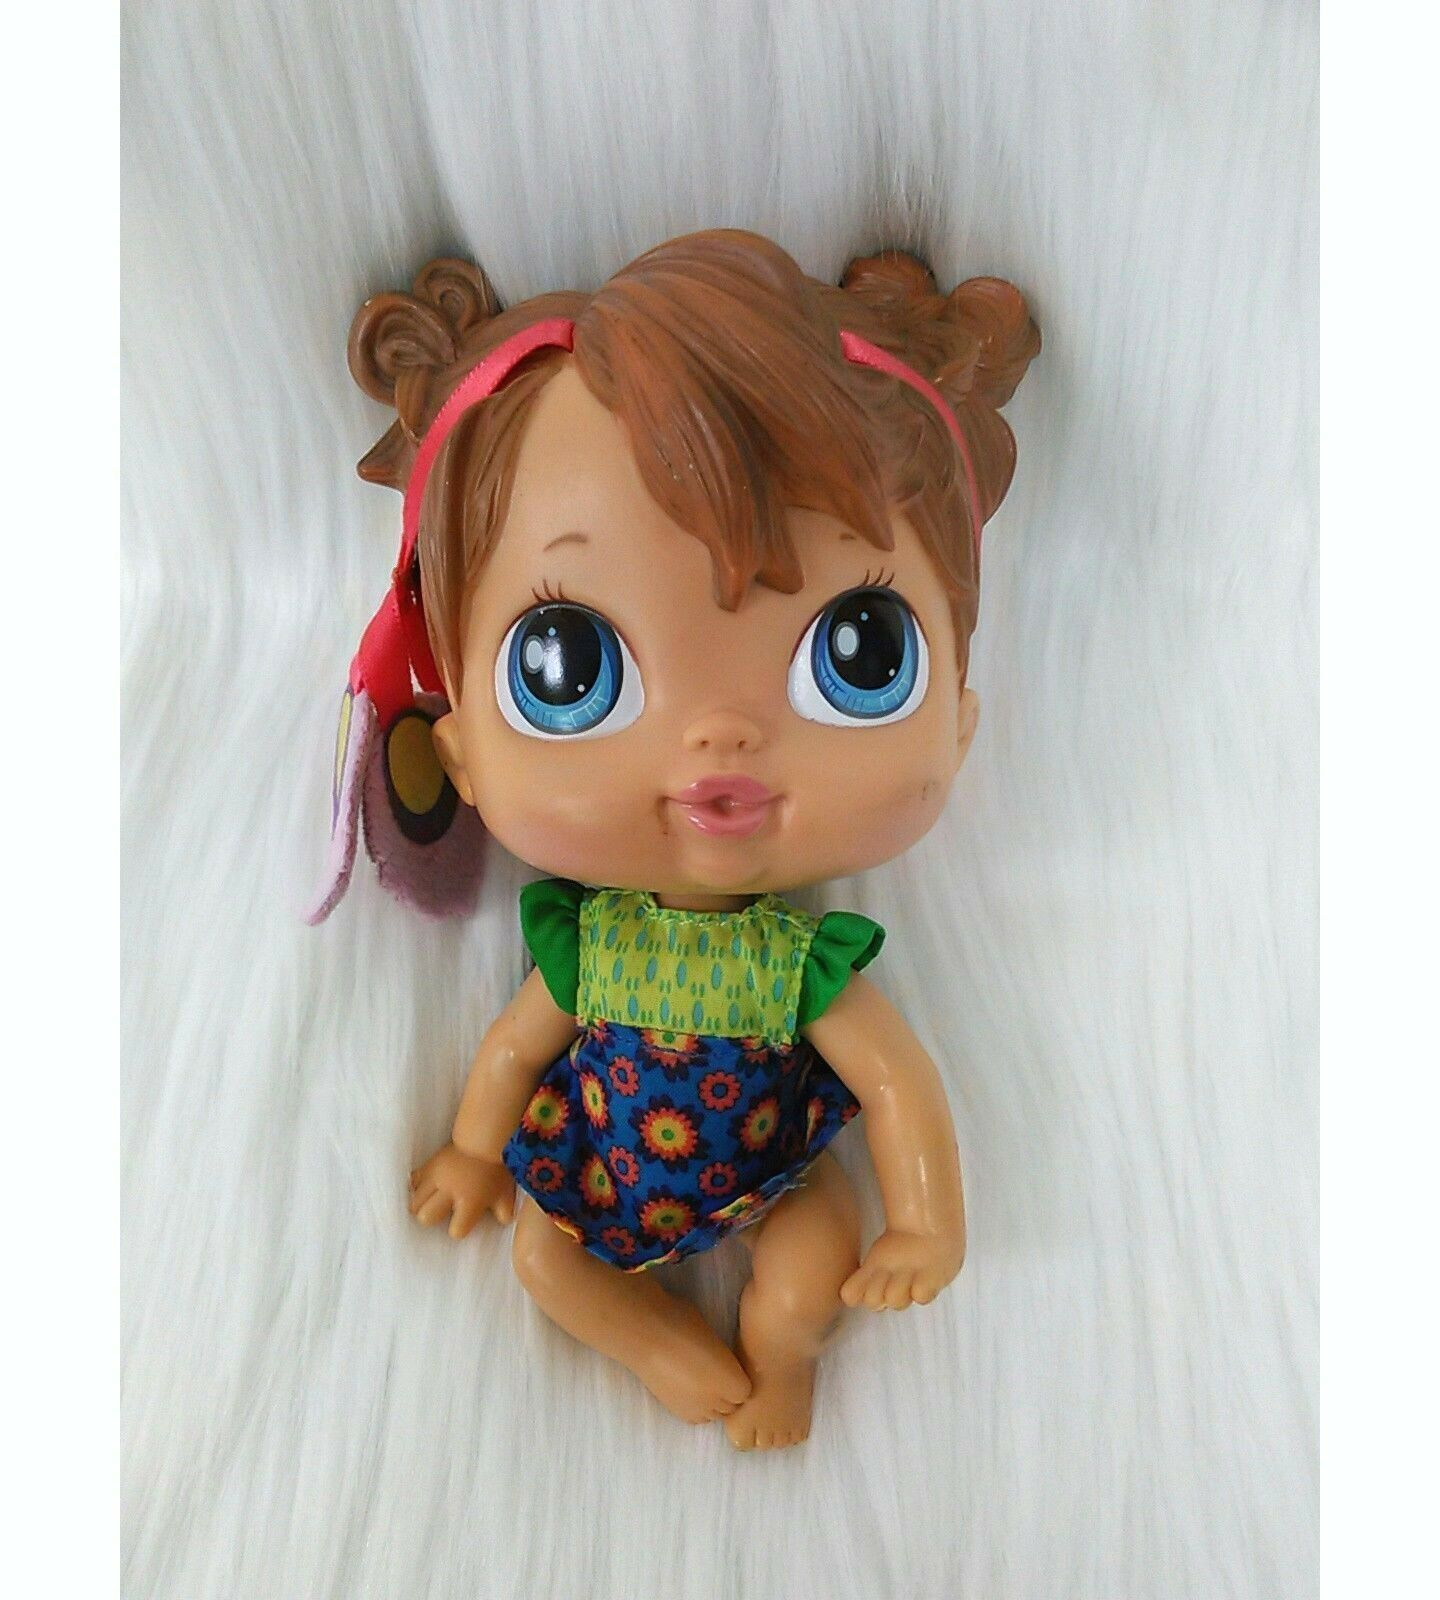 "6"" Baby Alive Crib Life Makayla Song Doll Retired 2010 Brown Hair Blue Eyes B211"